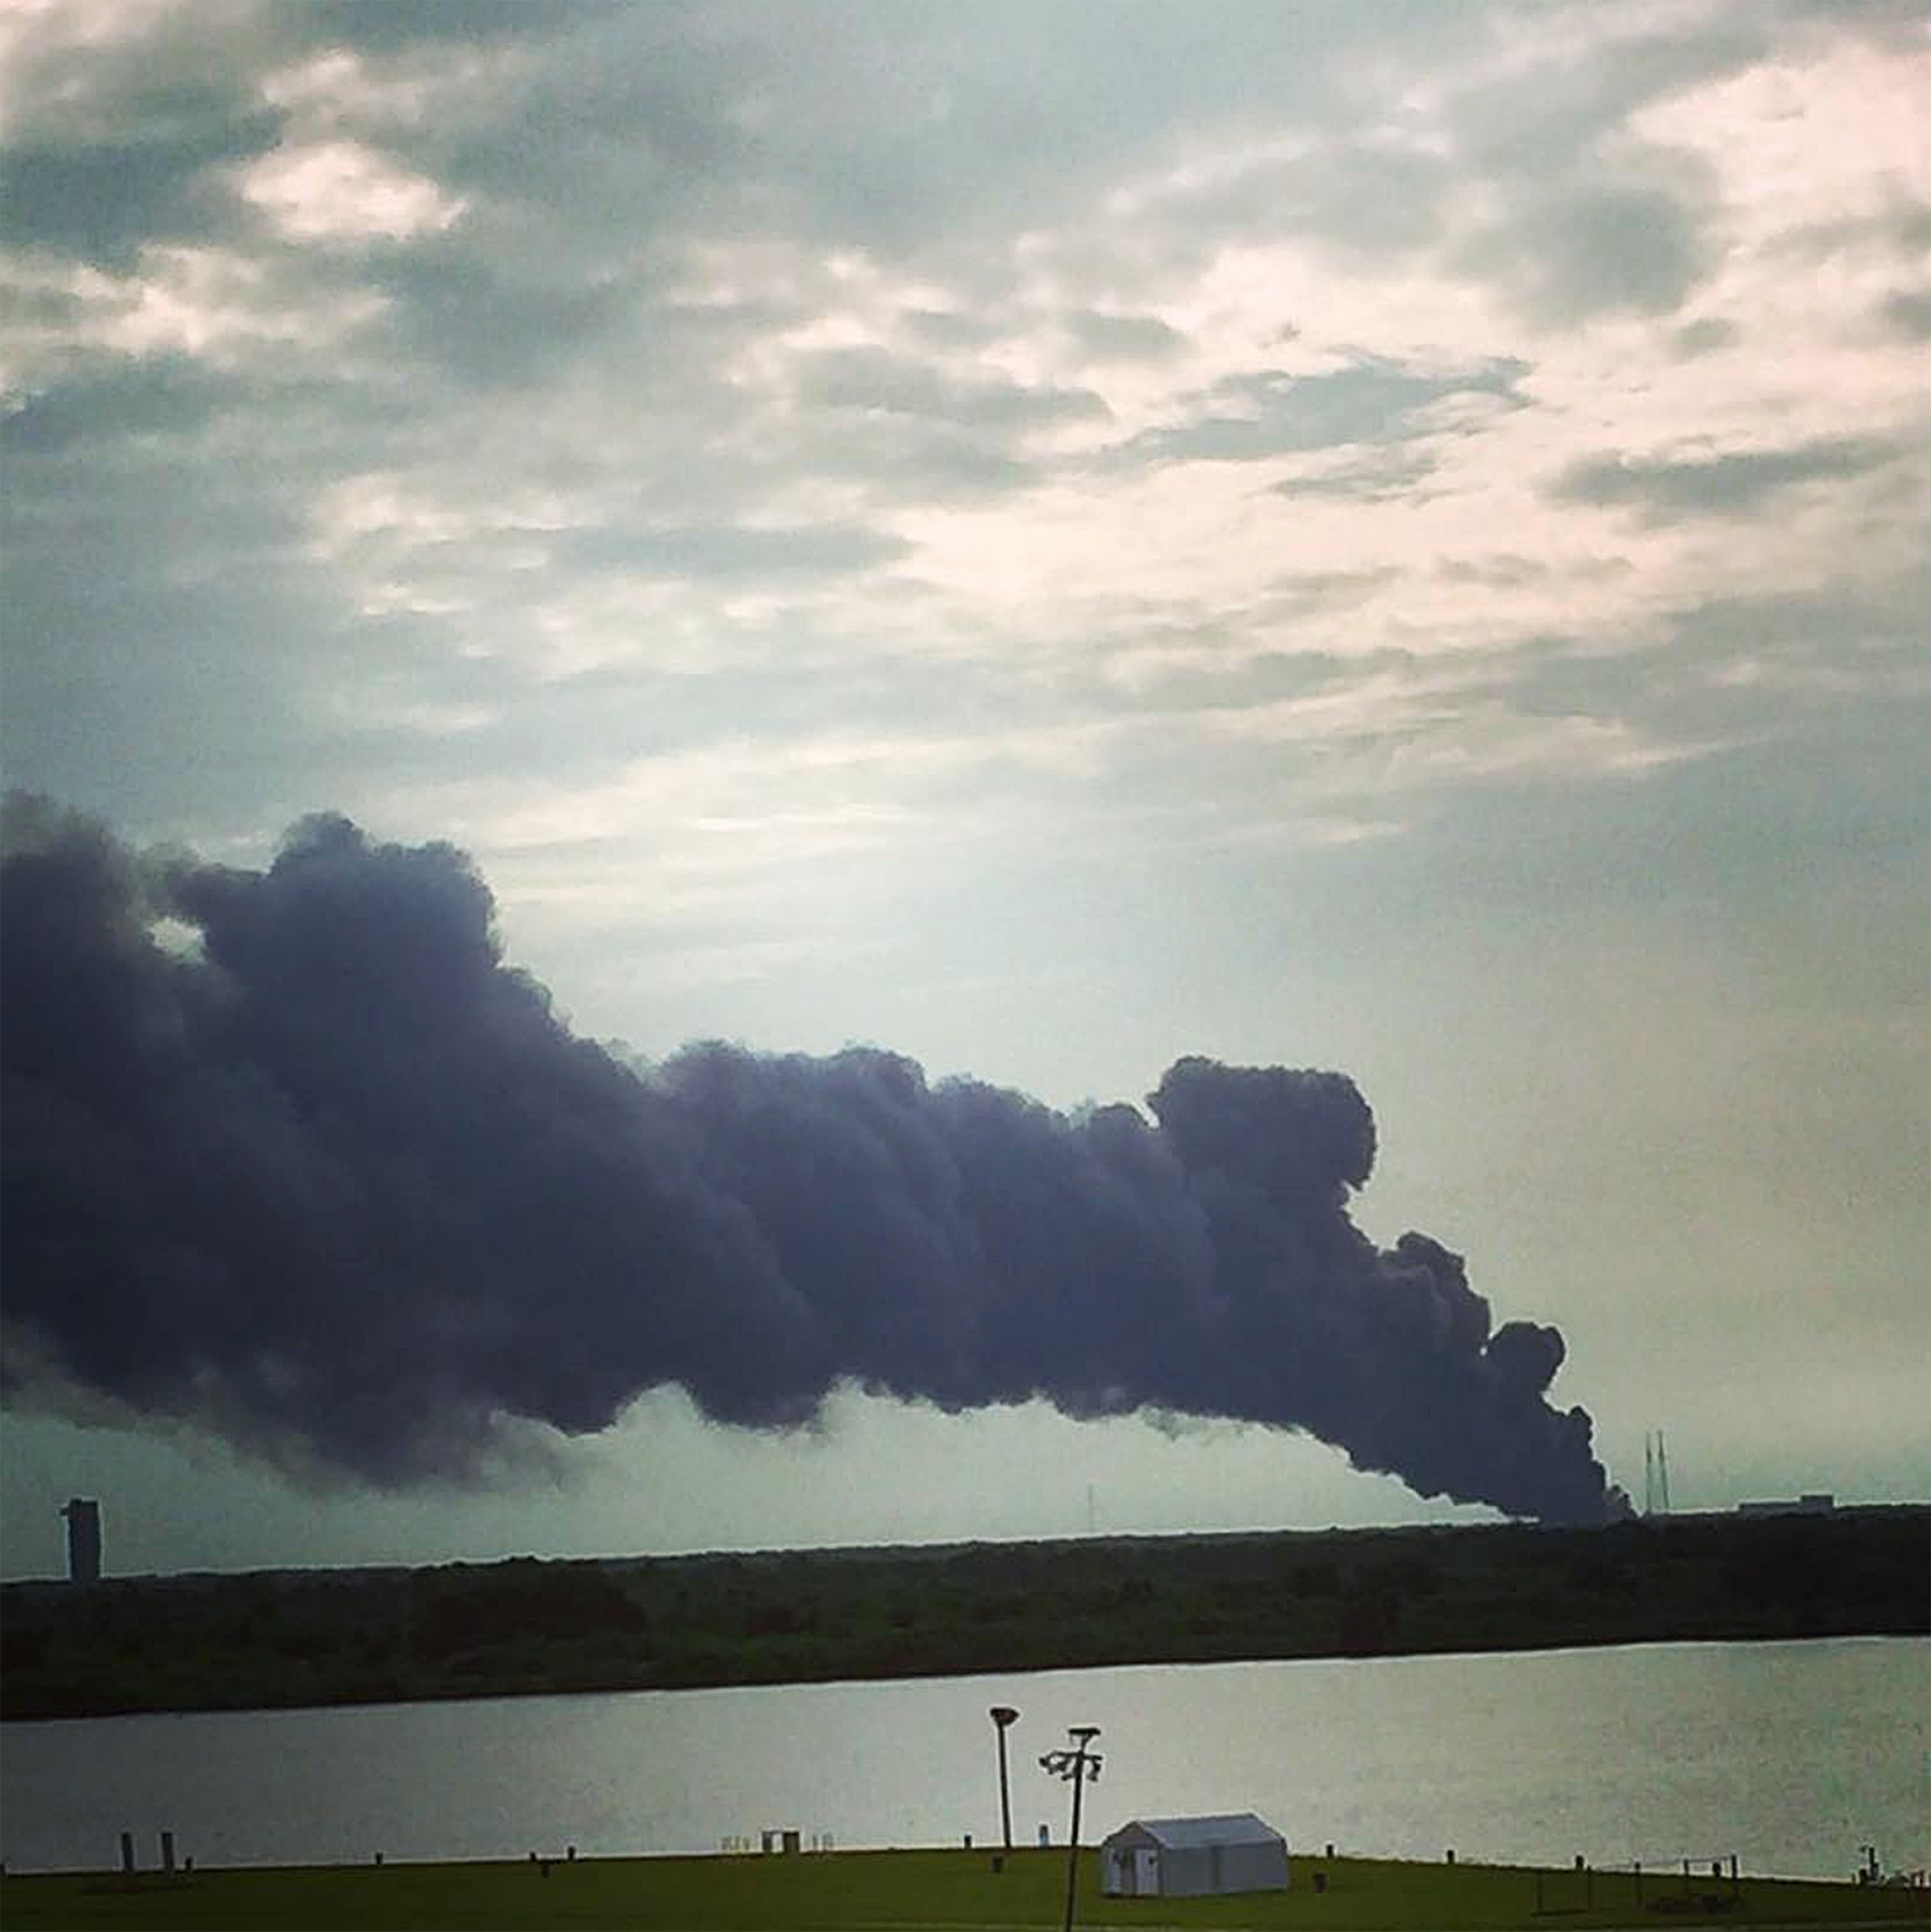 SpaceX explosion shows why we must slow down private space exploration until we rewrite law